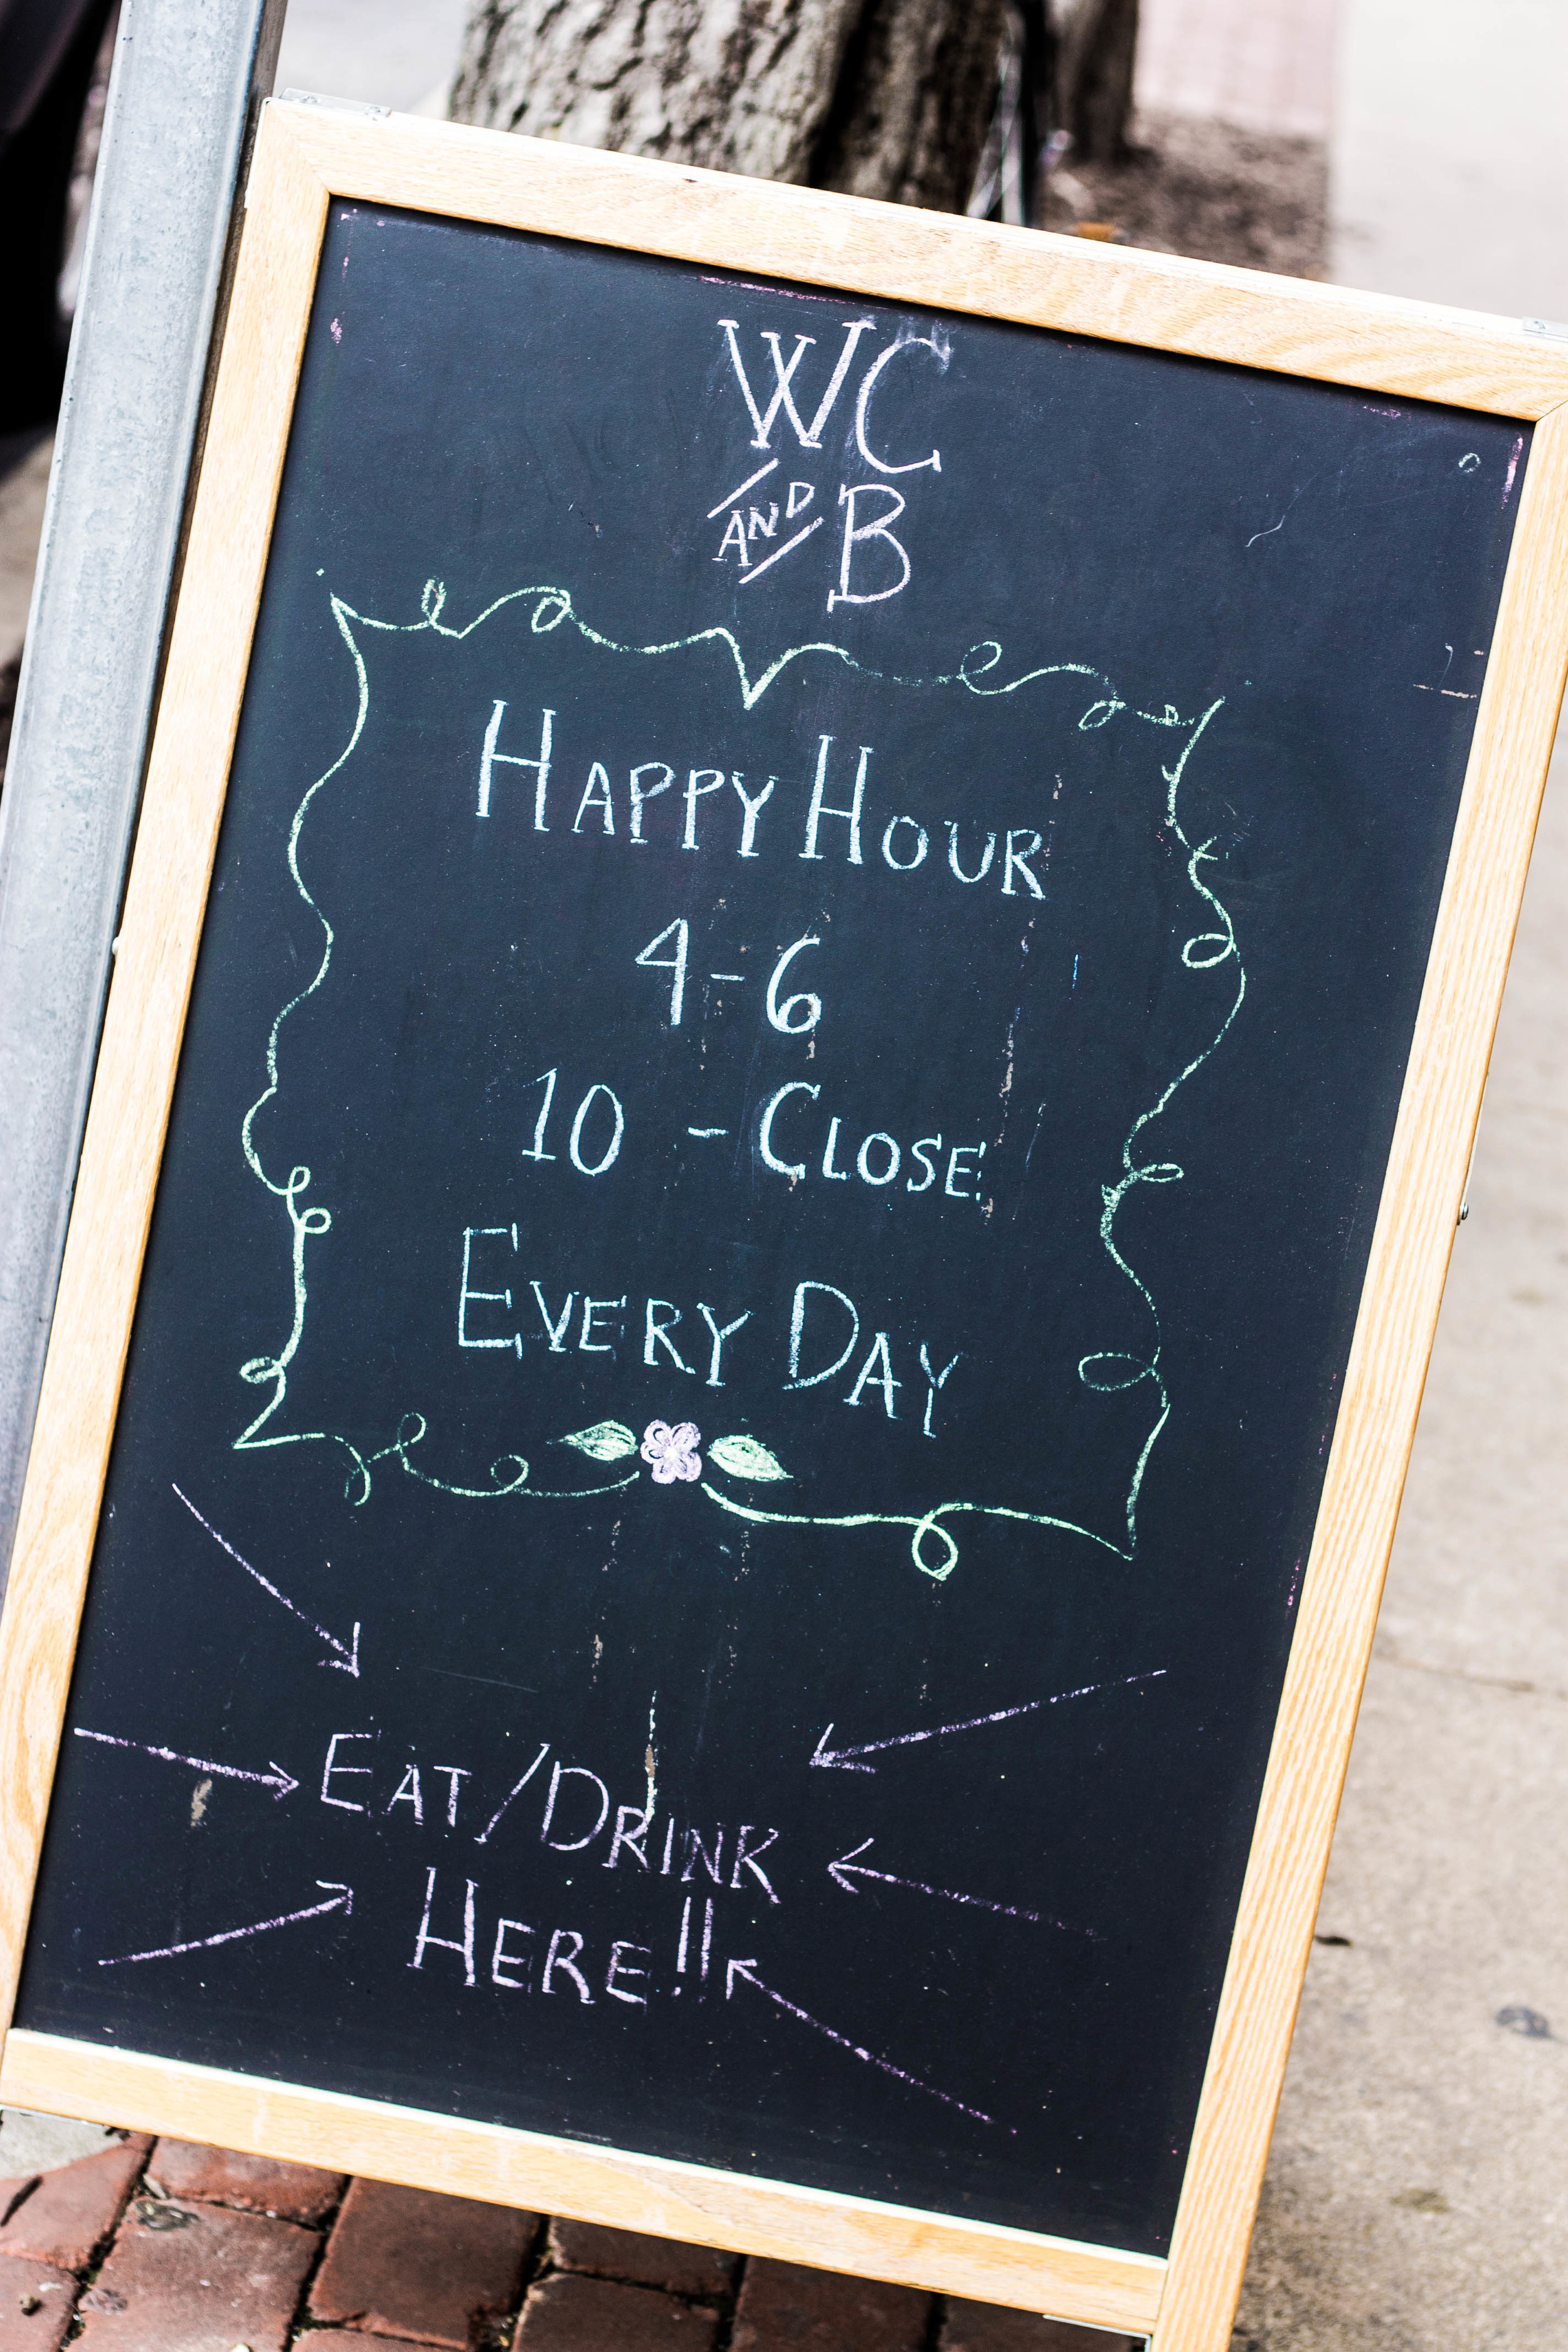 Happy Hour at Westport Cafe and Bar